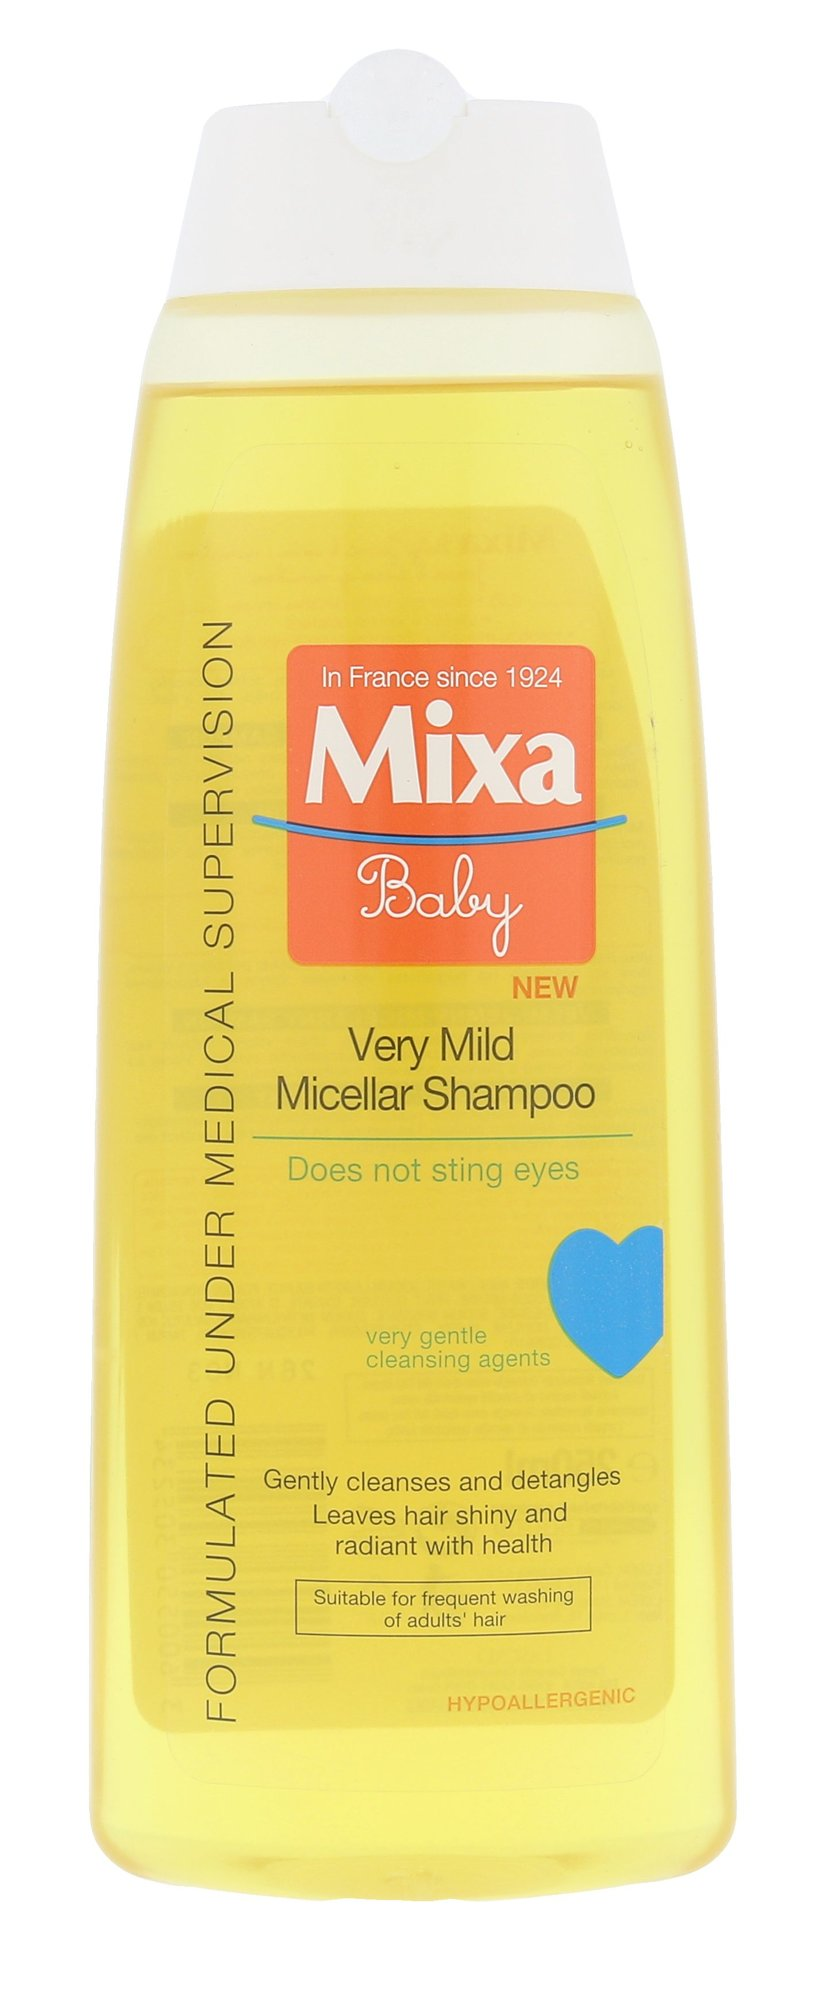 Mixa Baby Cosmetic 250ml